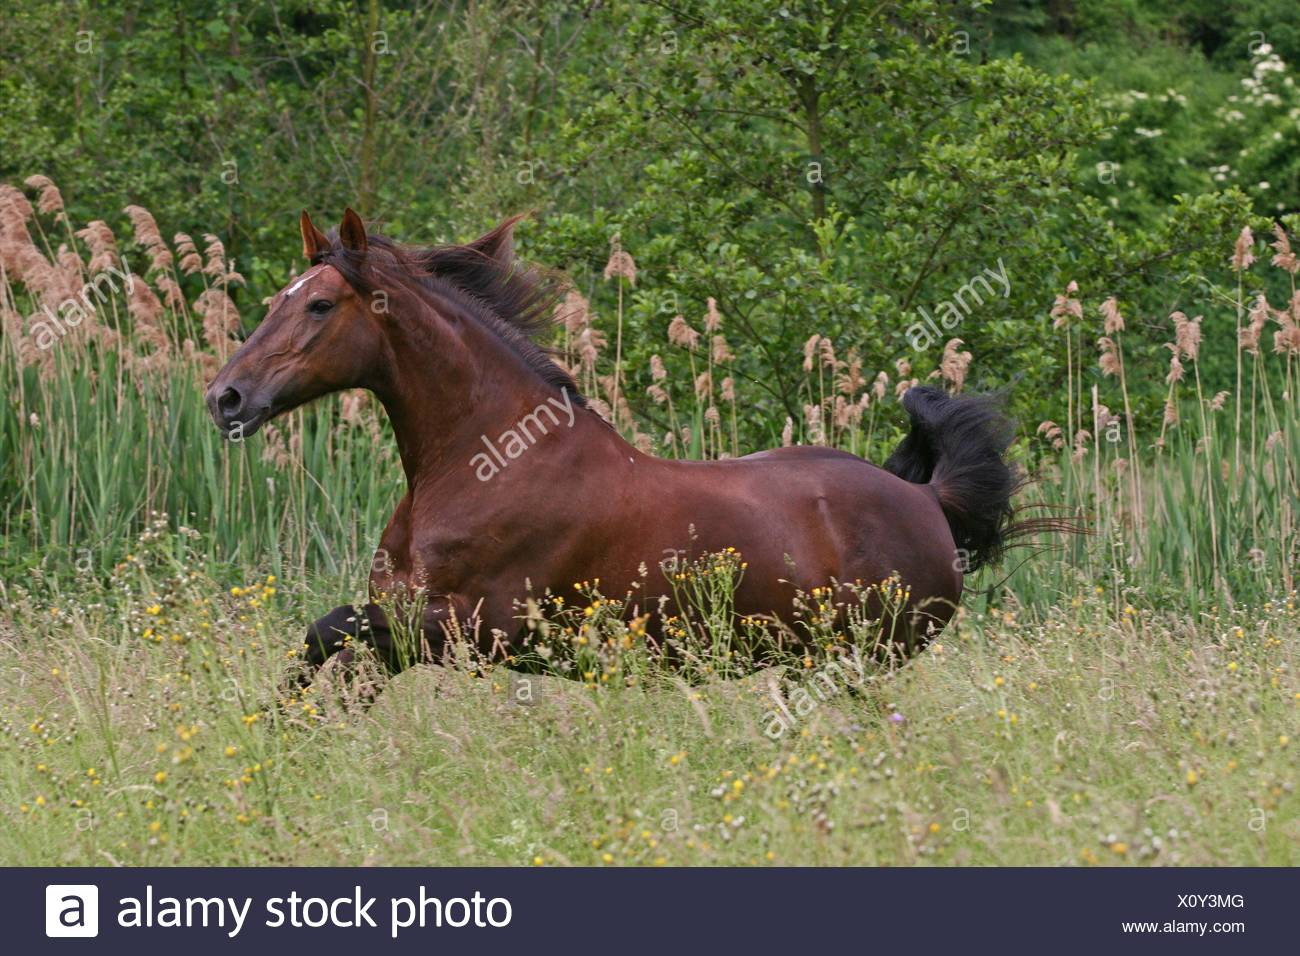 galloping latvian warmblood - Stock Image